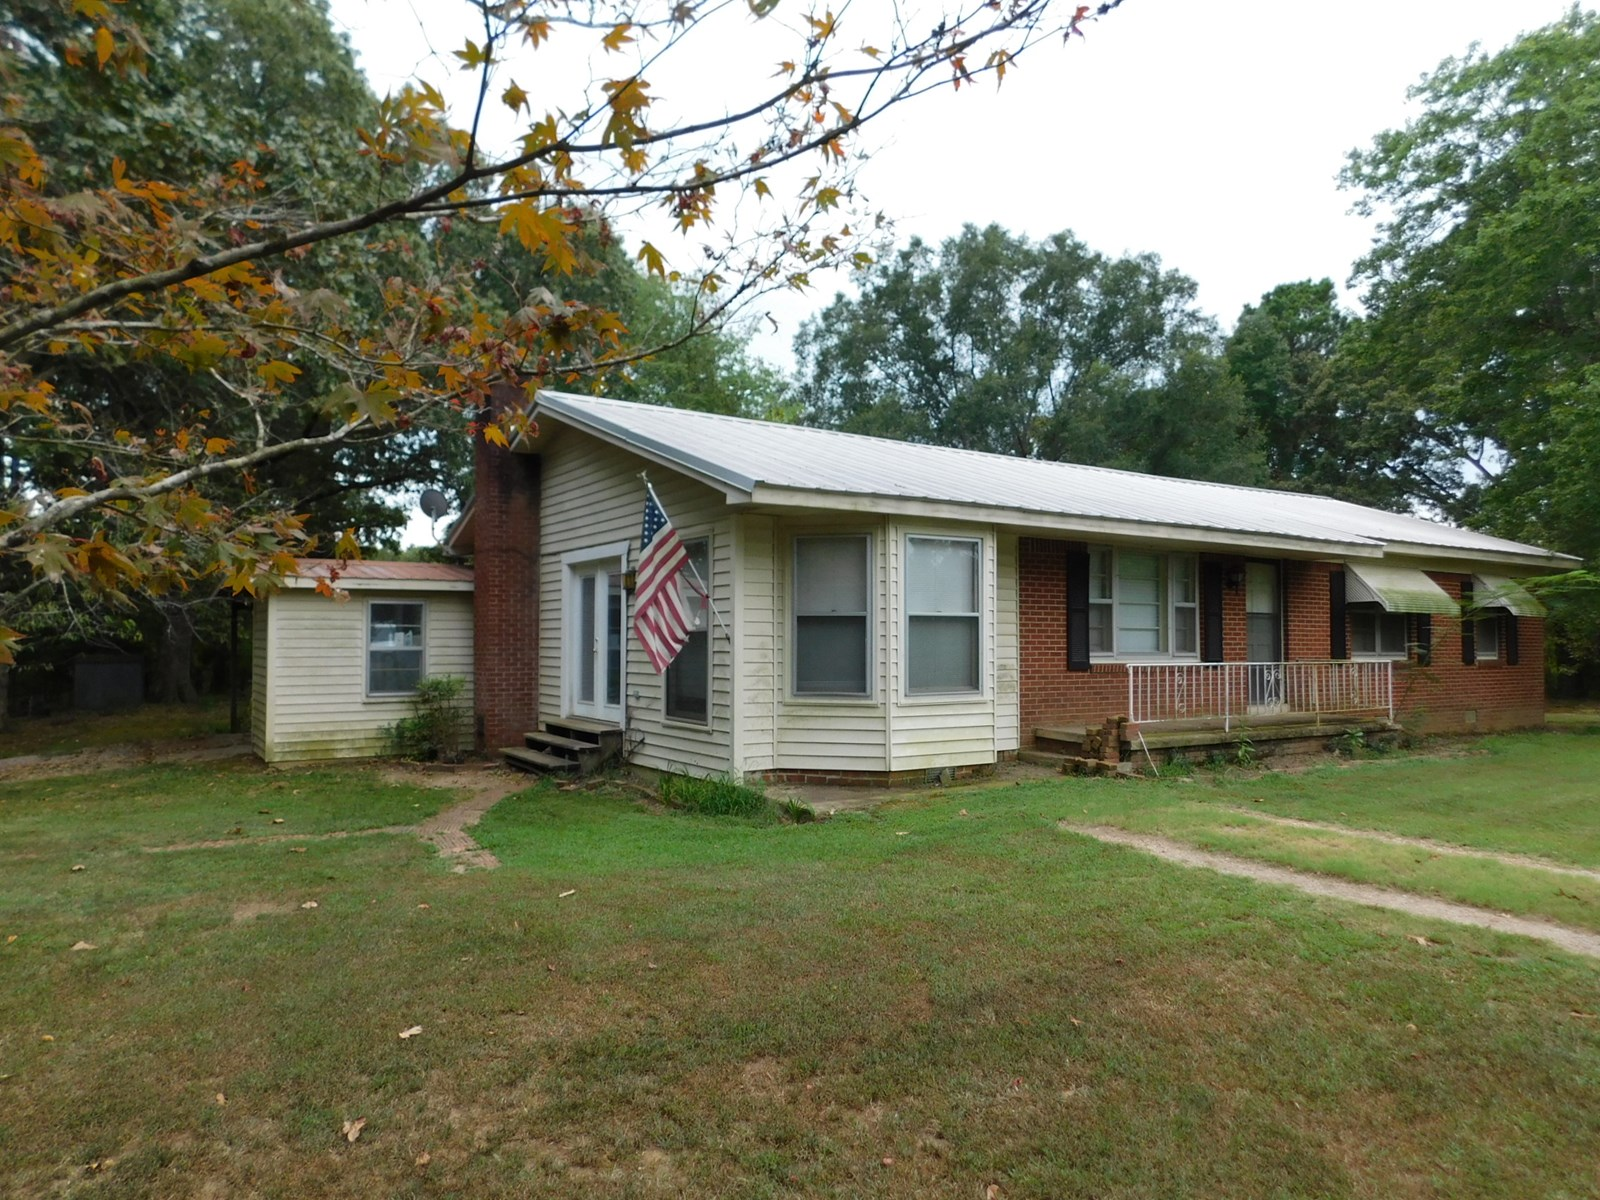 REMODELED COUNTRY BRICK HOME NEAR SHILOH PARK, HARDIN COUNTY